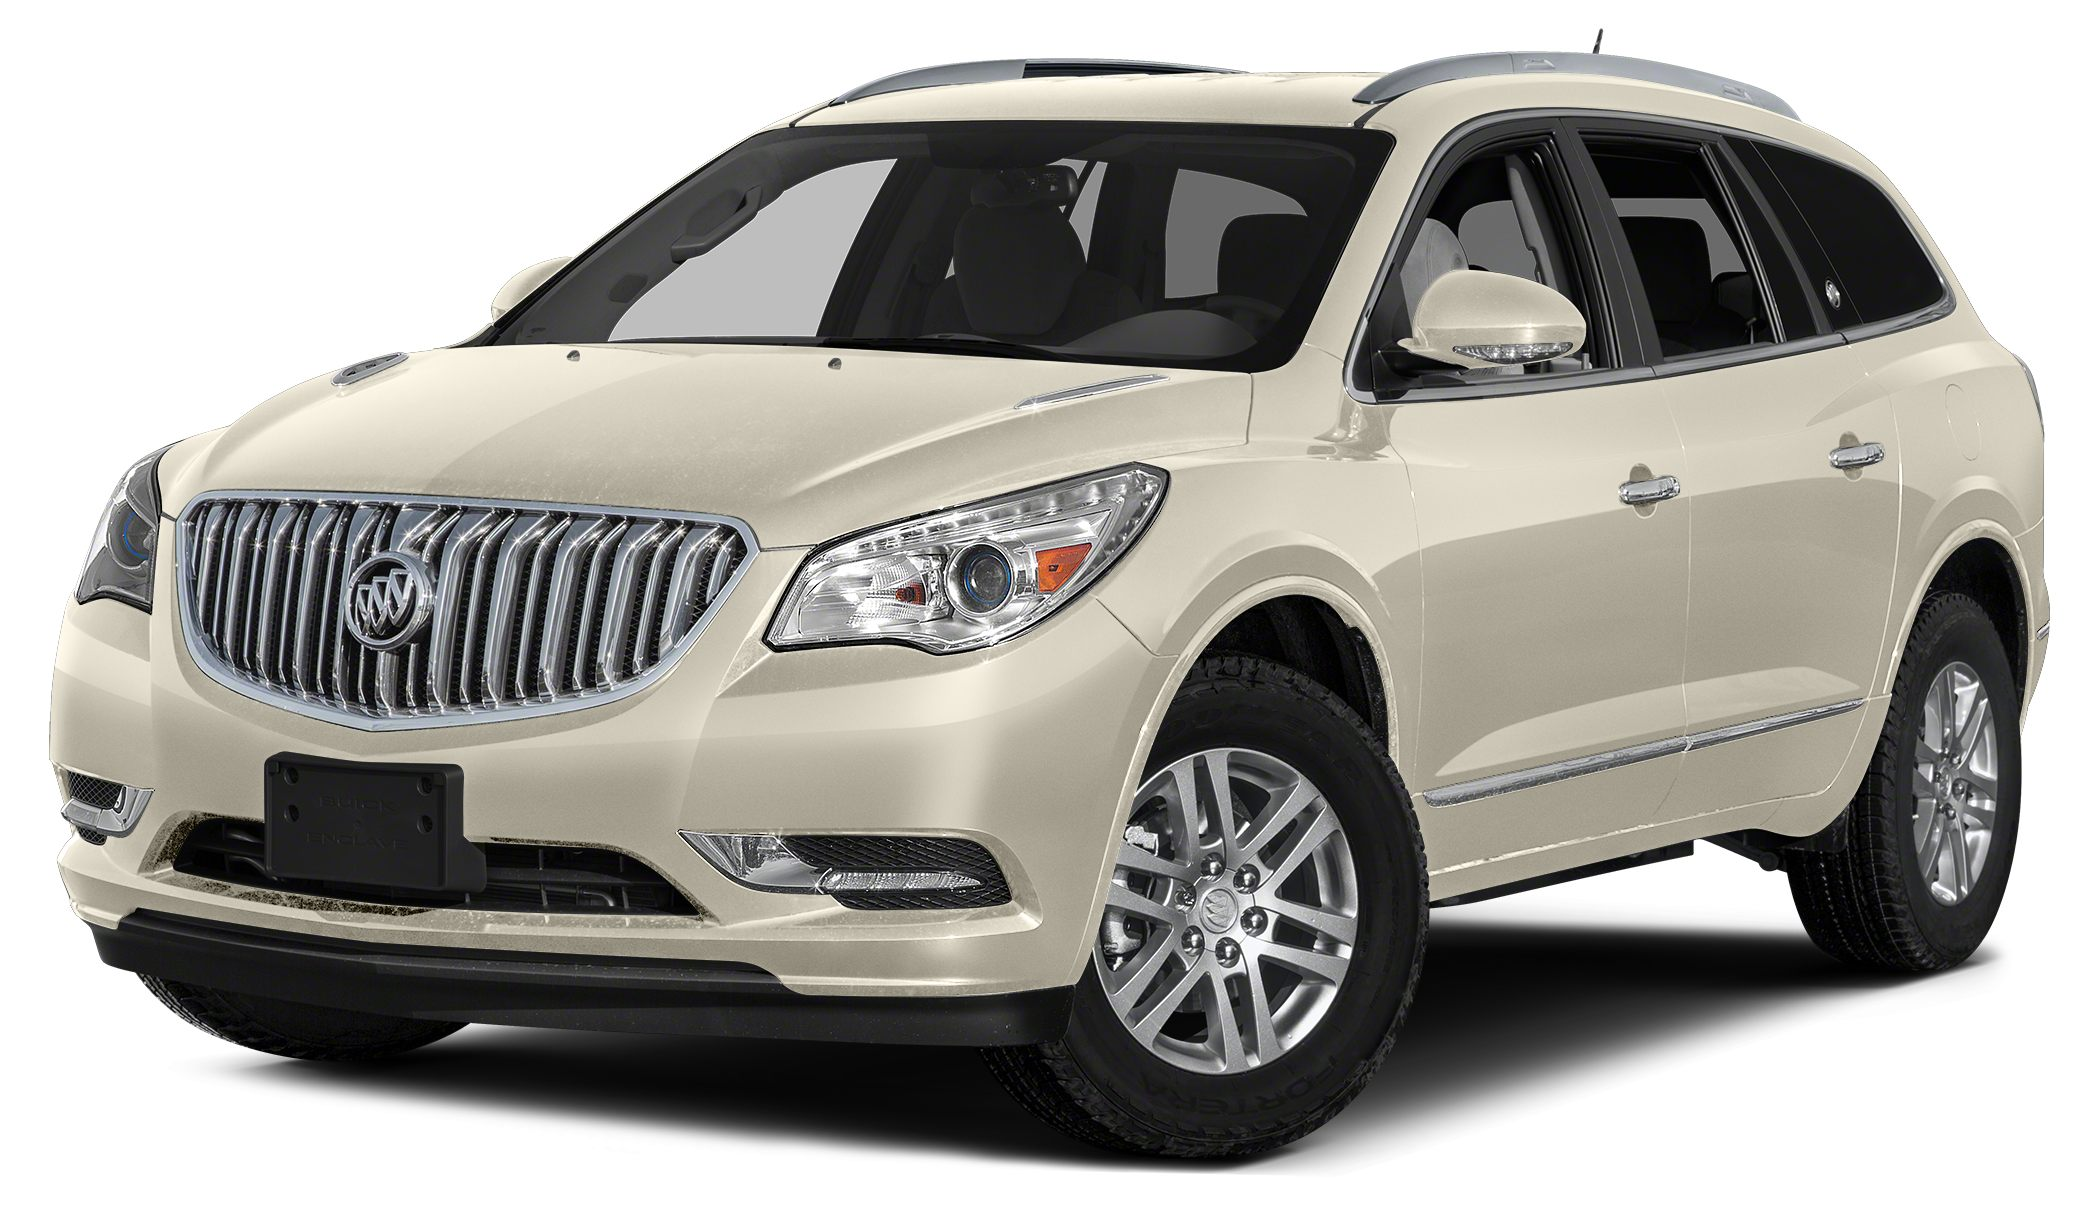 2014 Buick Enclave Premium EPA 24 MPG Hwy17 MPG City CARFAX 1-Owner LOW MILES - 31006 Heated